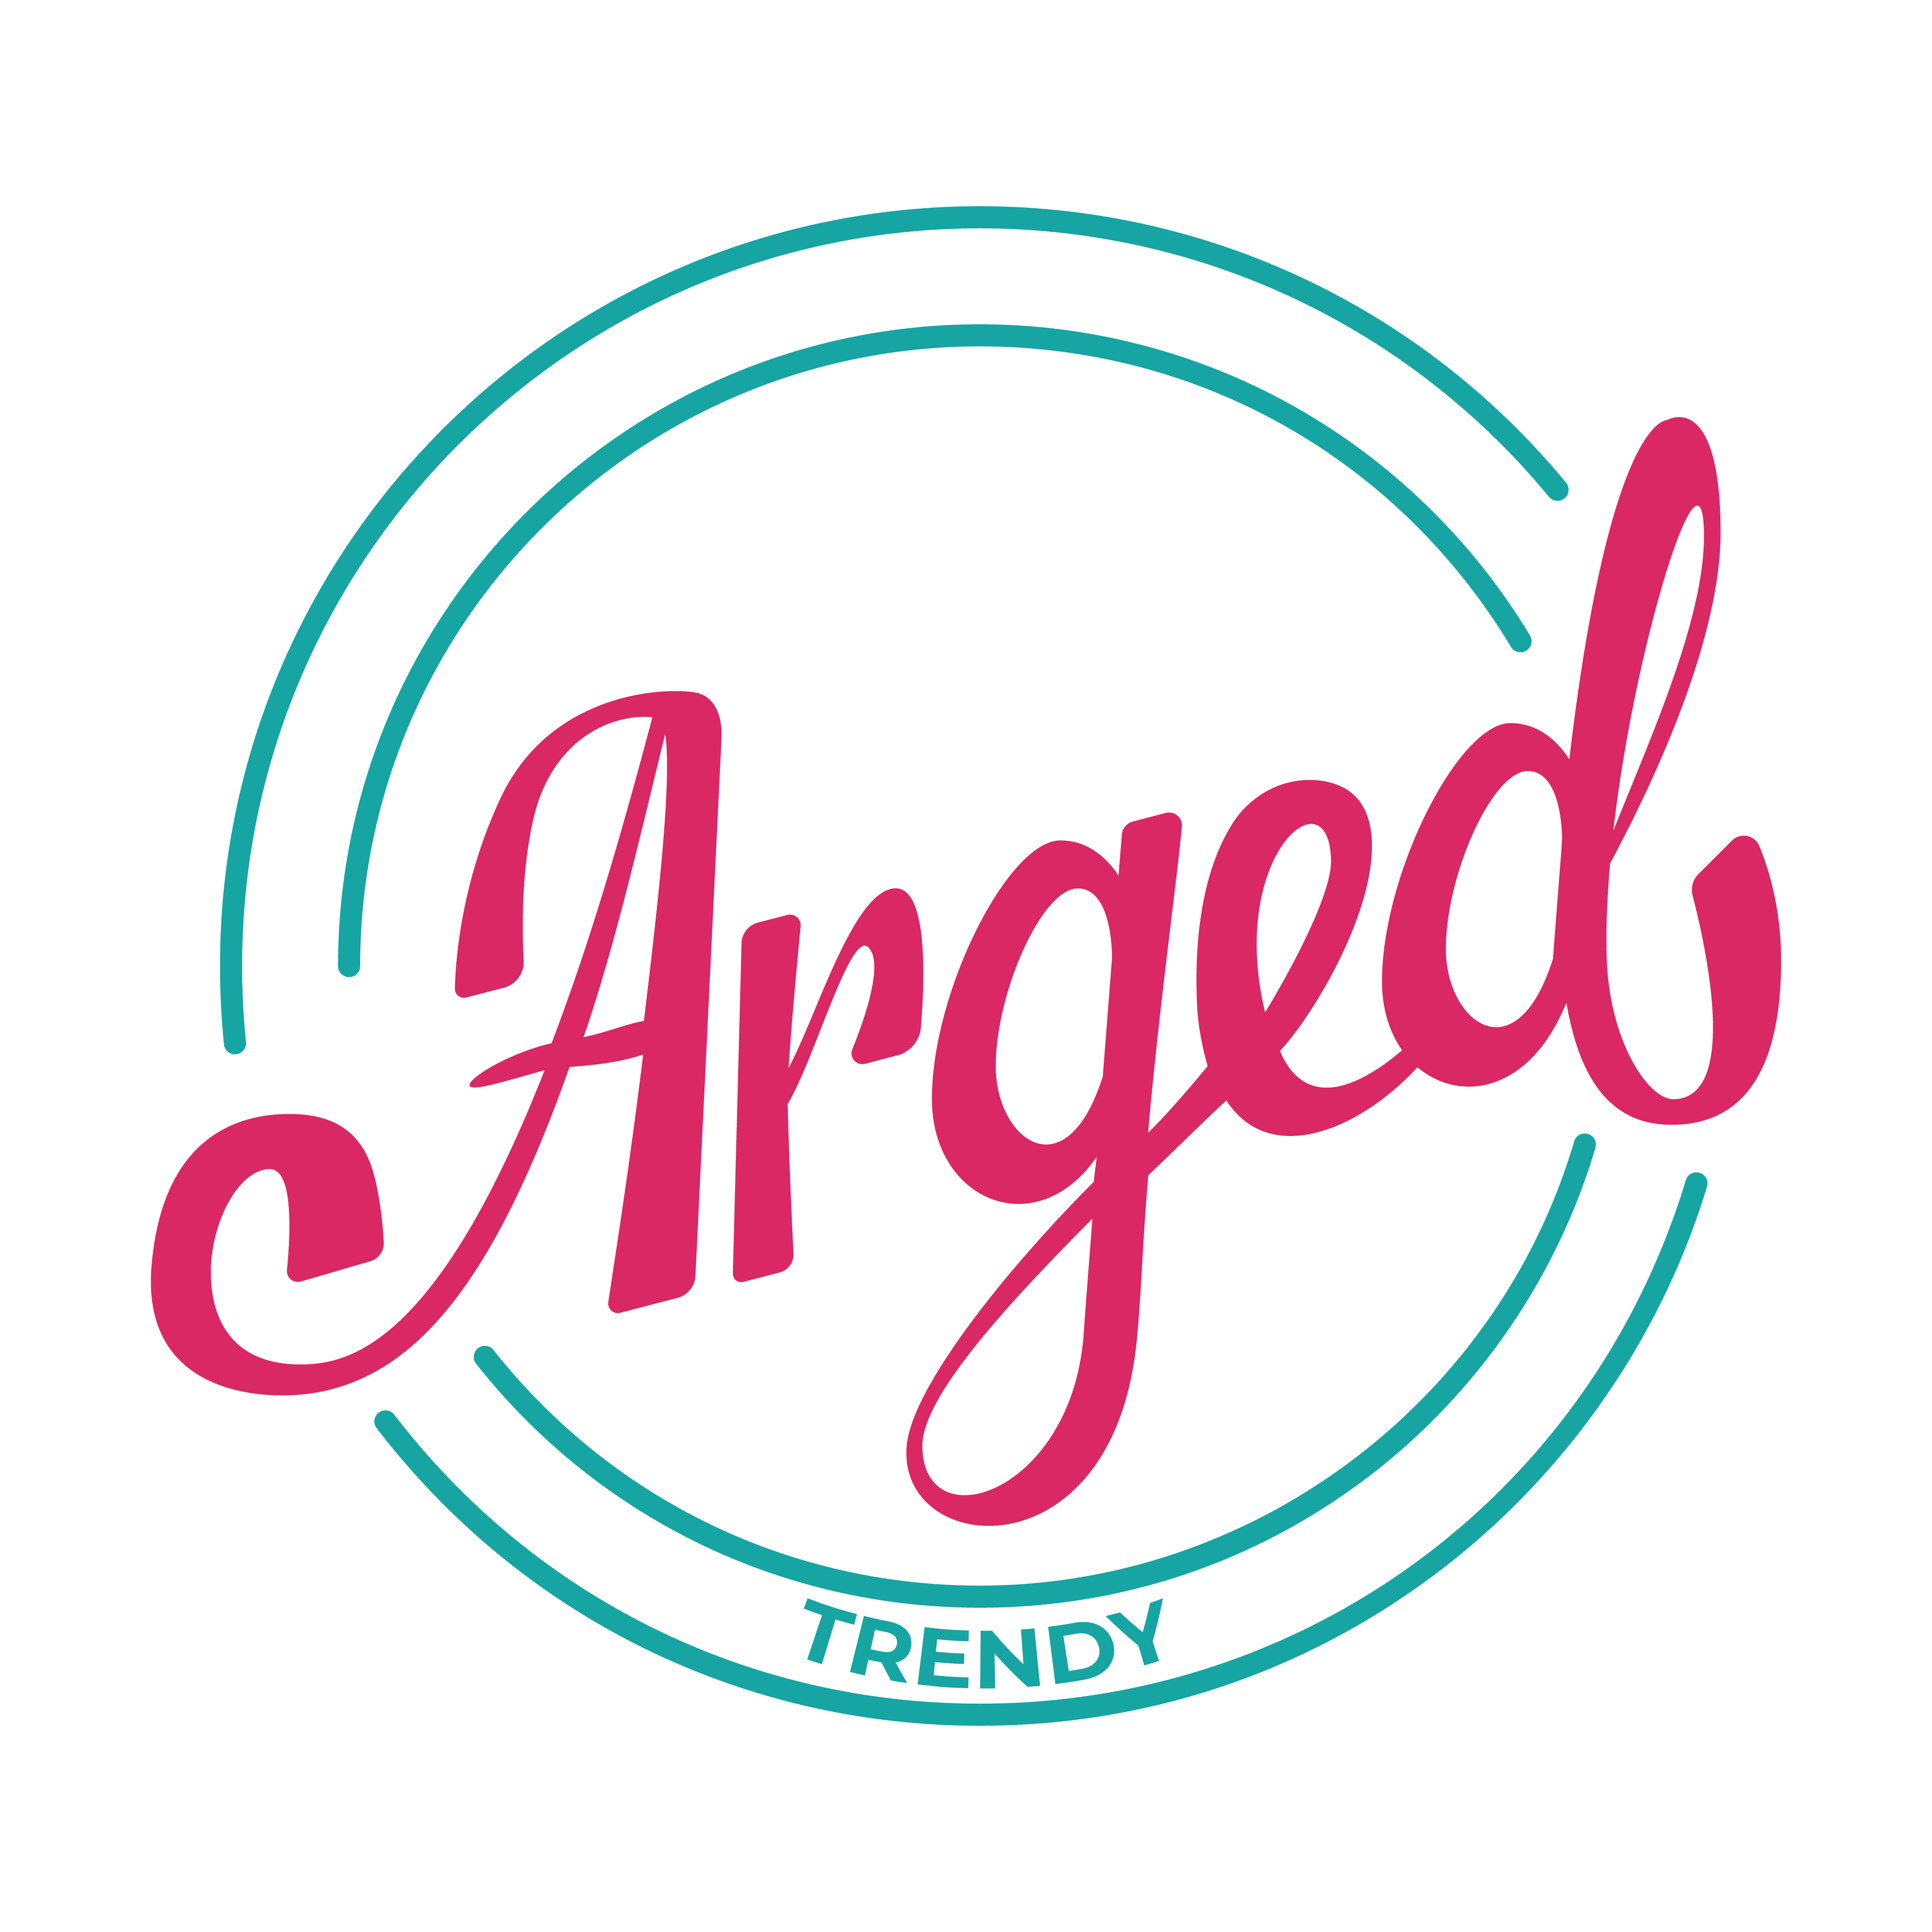 ARGED TRENDY